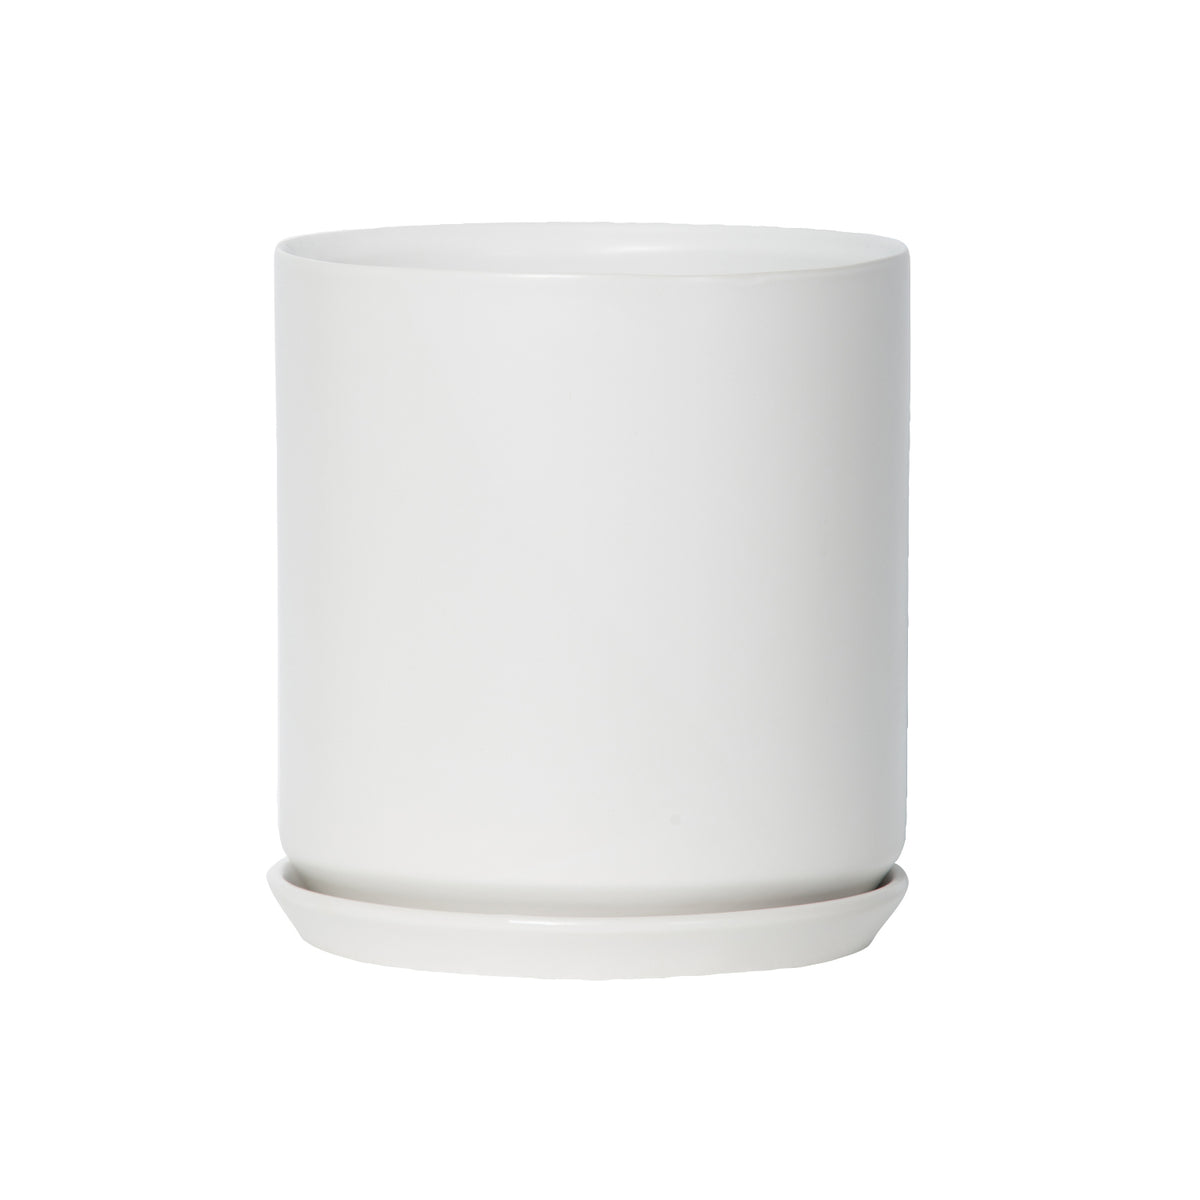 Oslo Planter - White